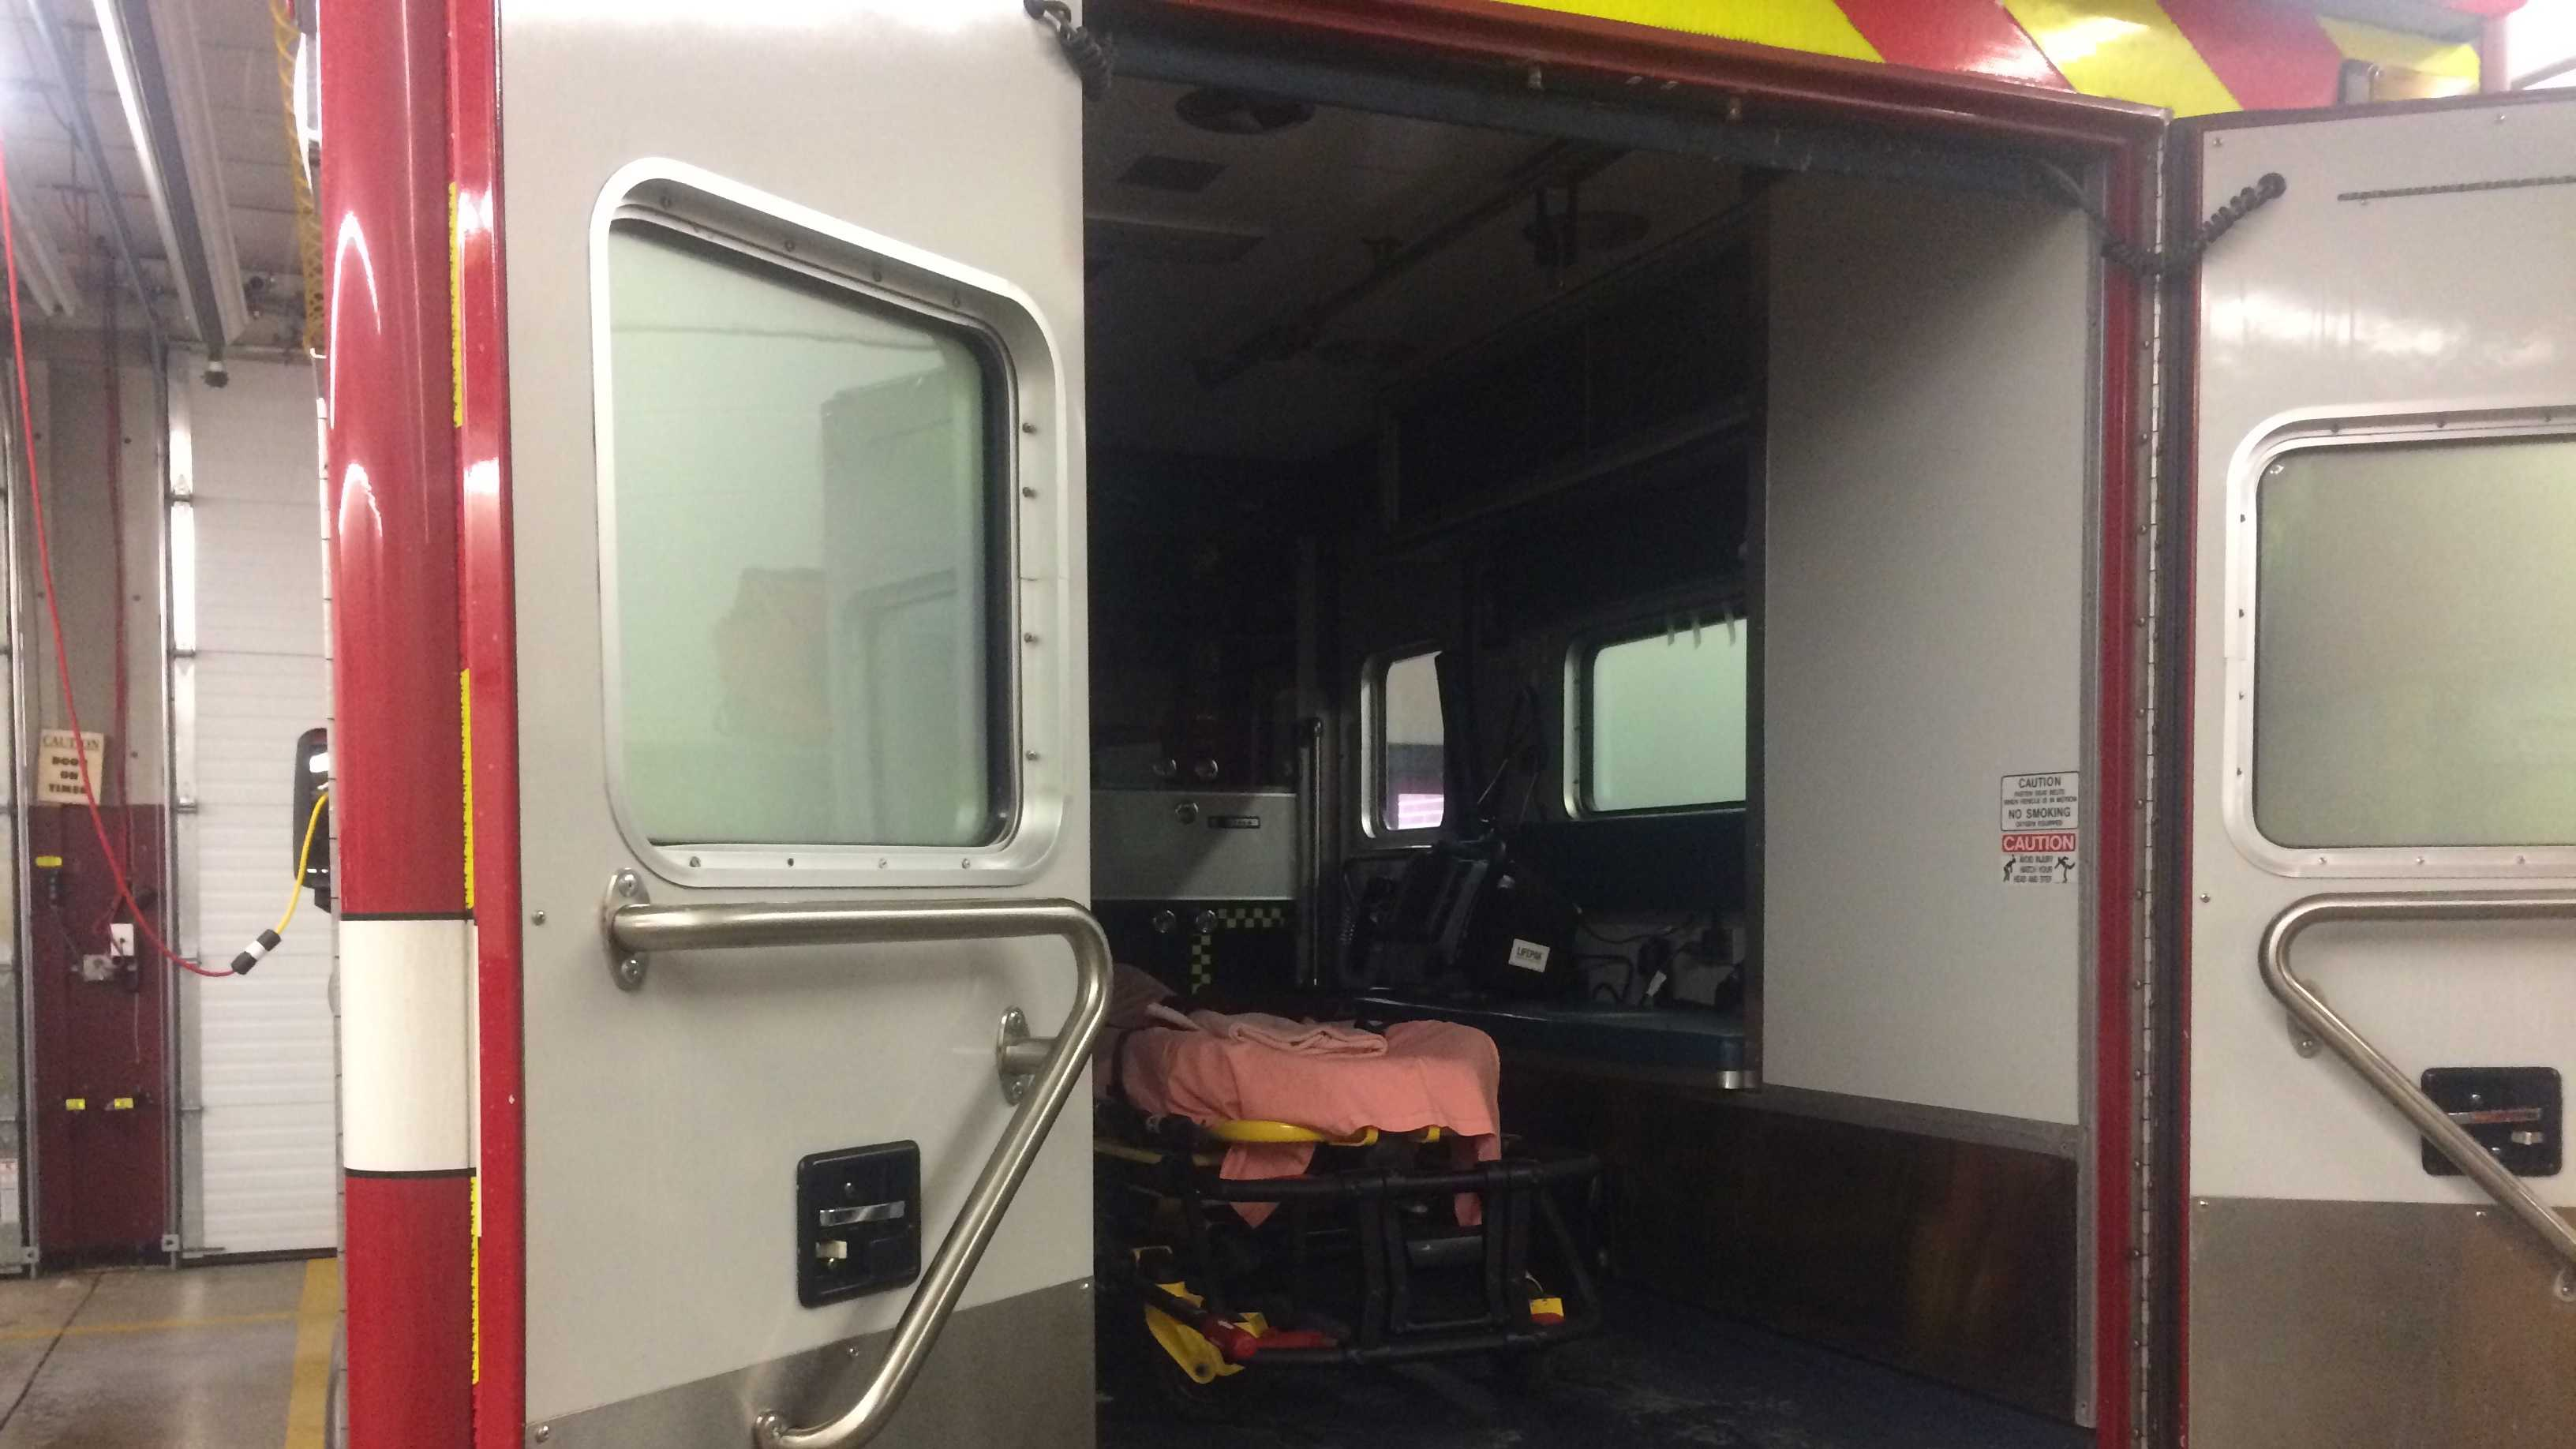 An Easton ambulance taking a crash victim to a Boston hospital had to be diverted because of the protests on I-93 in Milton and Somerville Thursday morning, Easton's fire chief said.